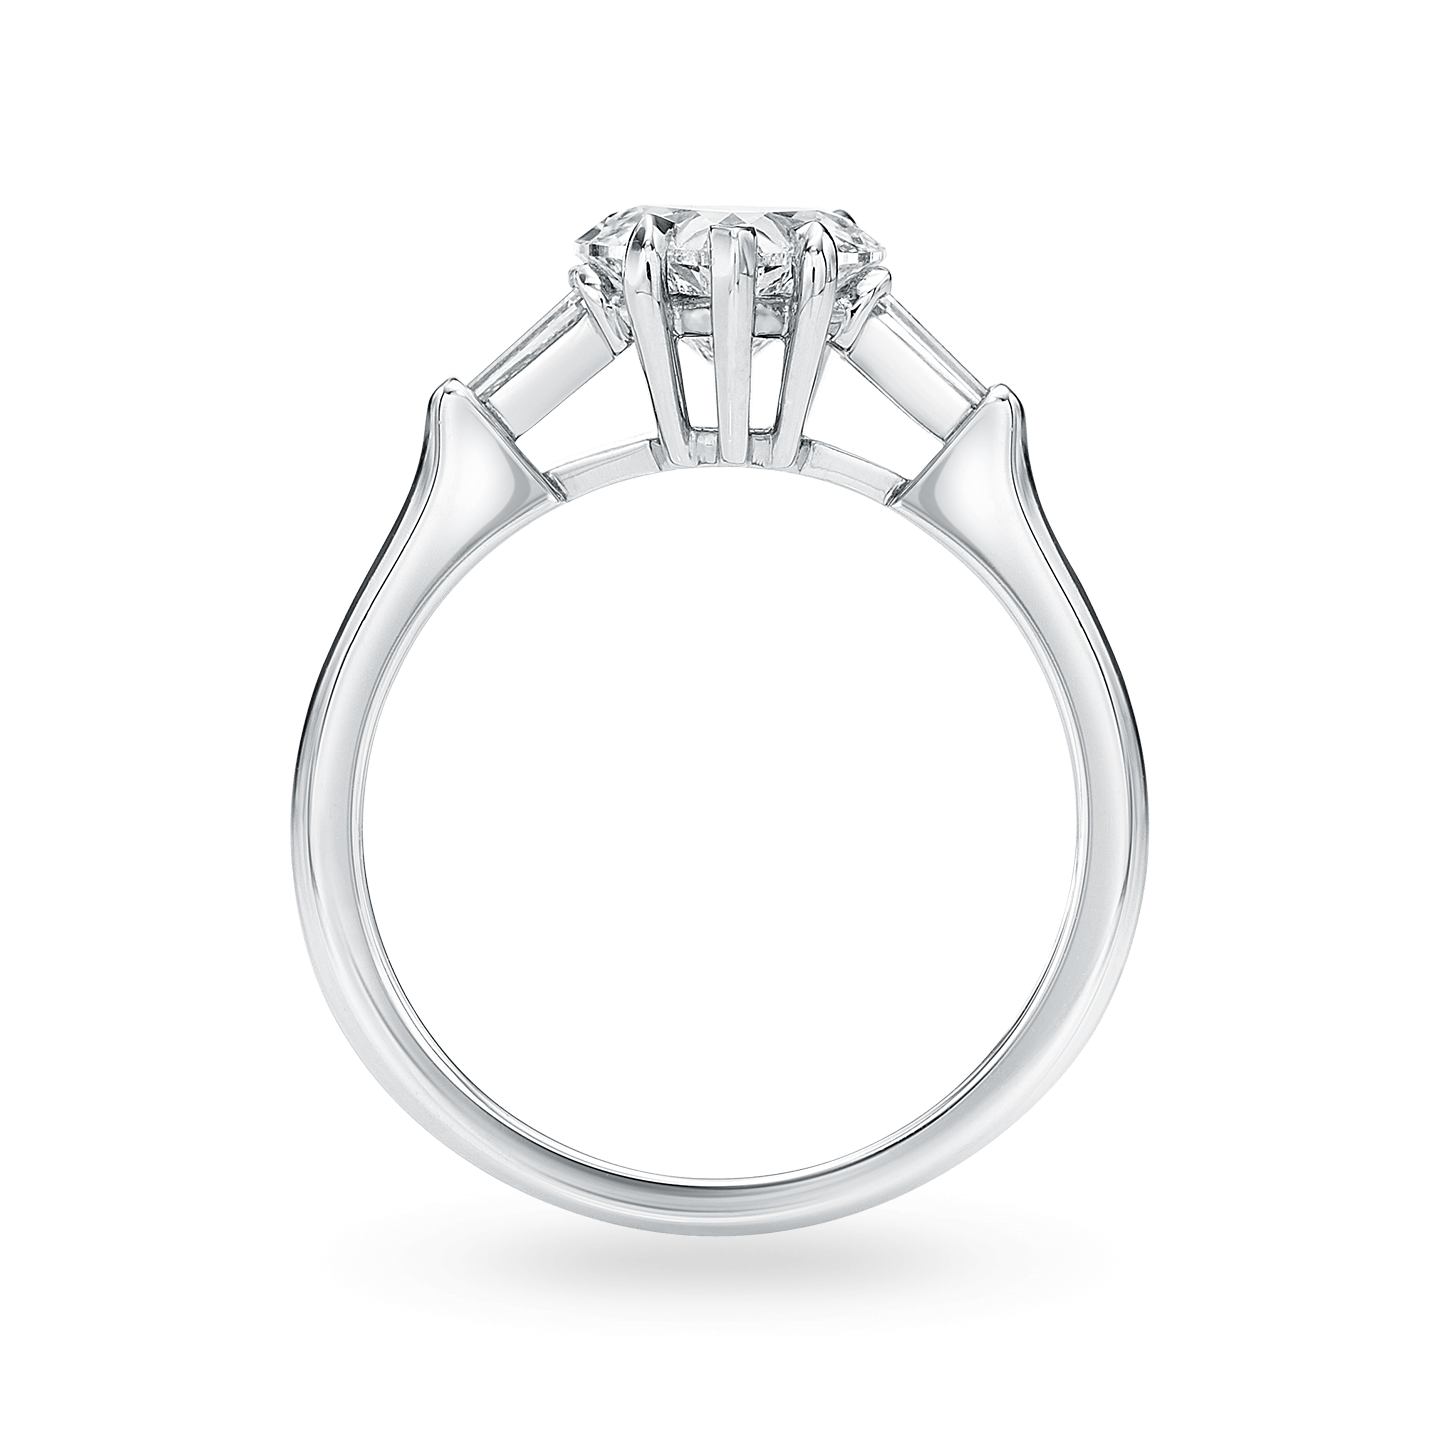 Classic Winston Heart-Shaped Engagement Ring with Tapered Baguette Side Stones, Product Image 2